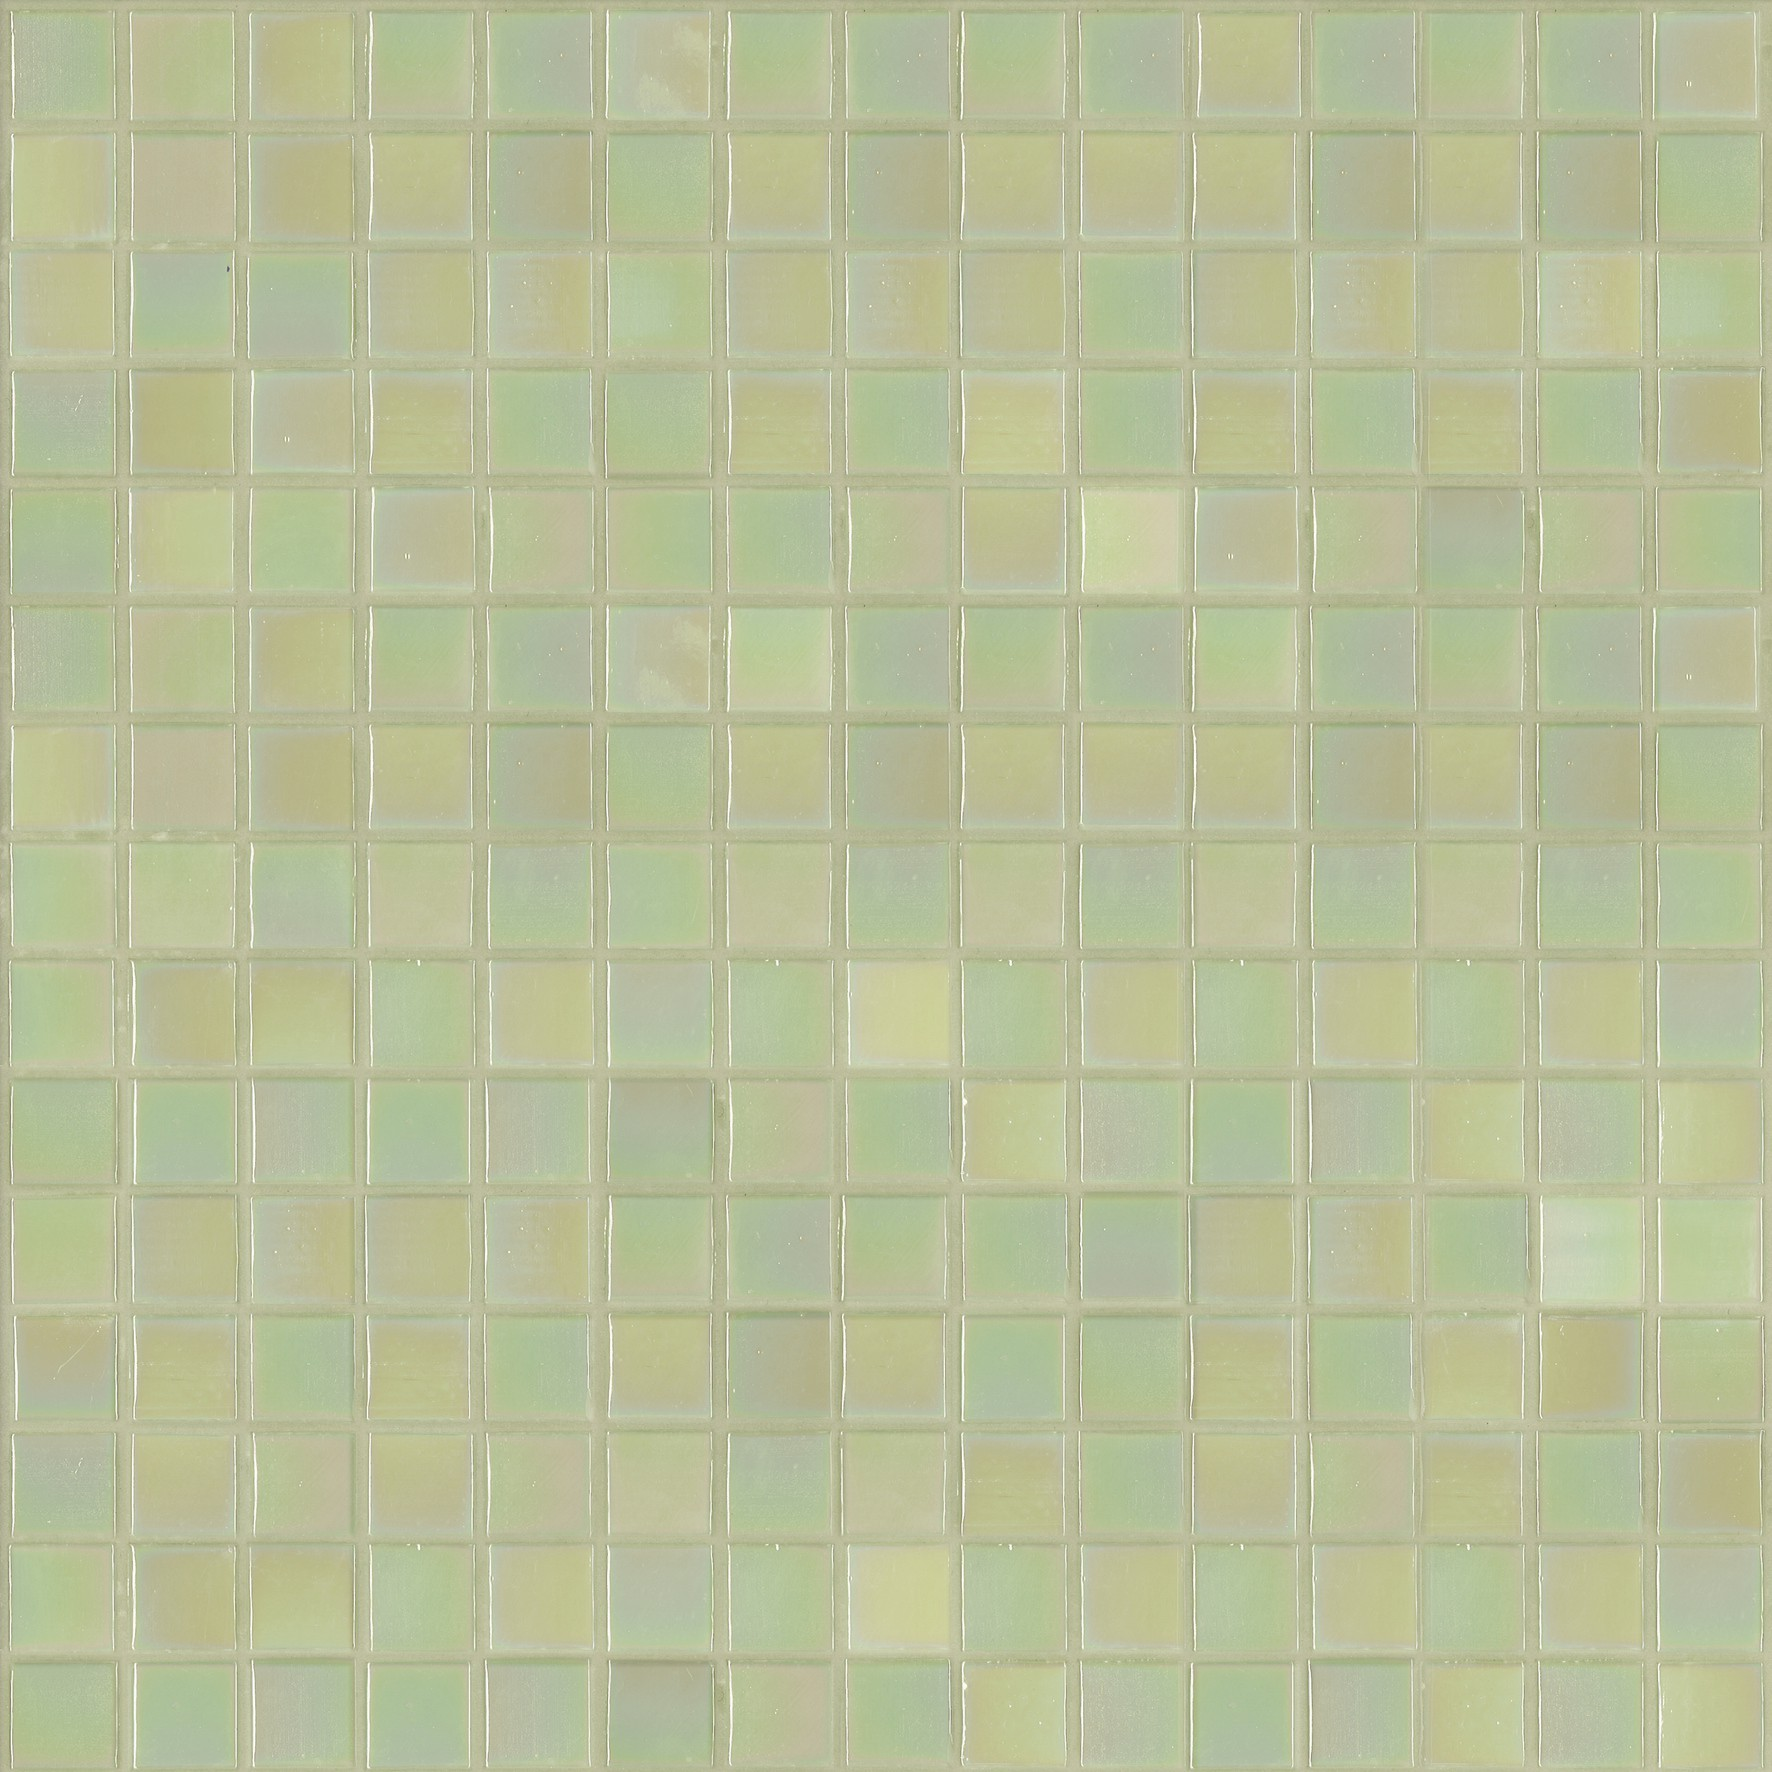 Bisazza Gloss Gl 06 Mosaic Tile 20mm 3 4 20 Sheets